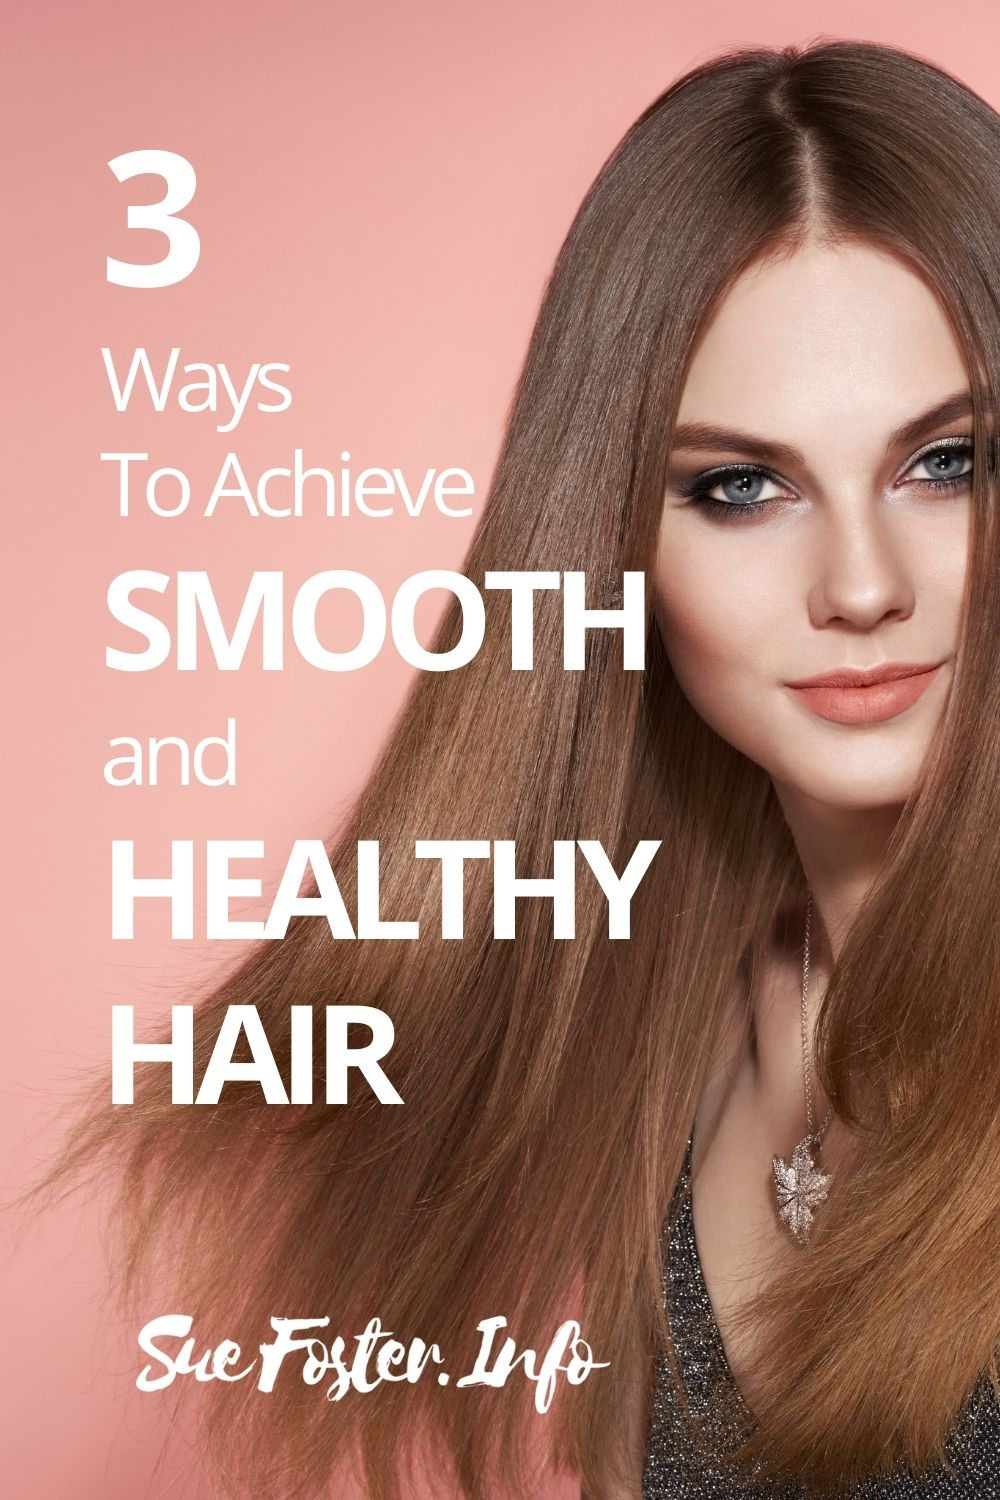 Here are 3 tips to end your bad-hair days and achieve smooth and healthy hair.